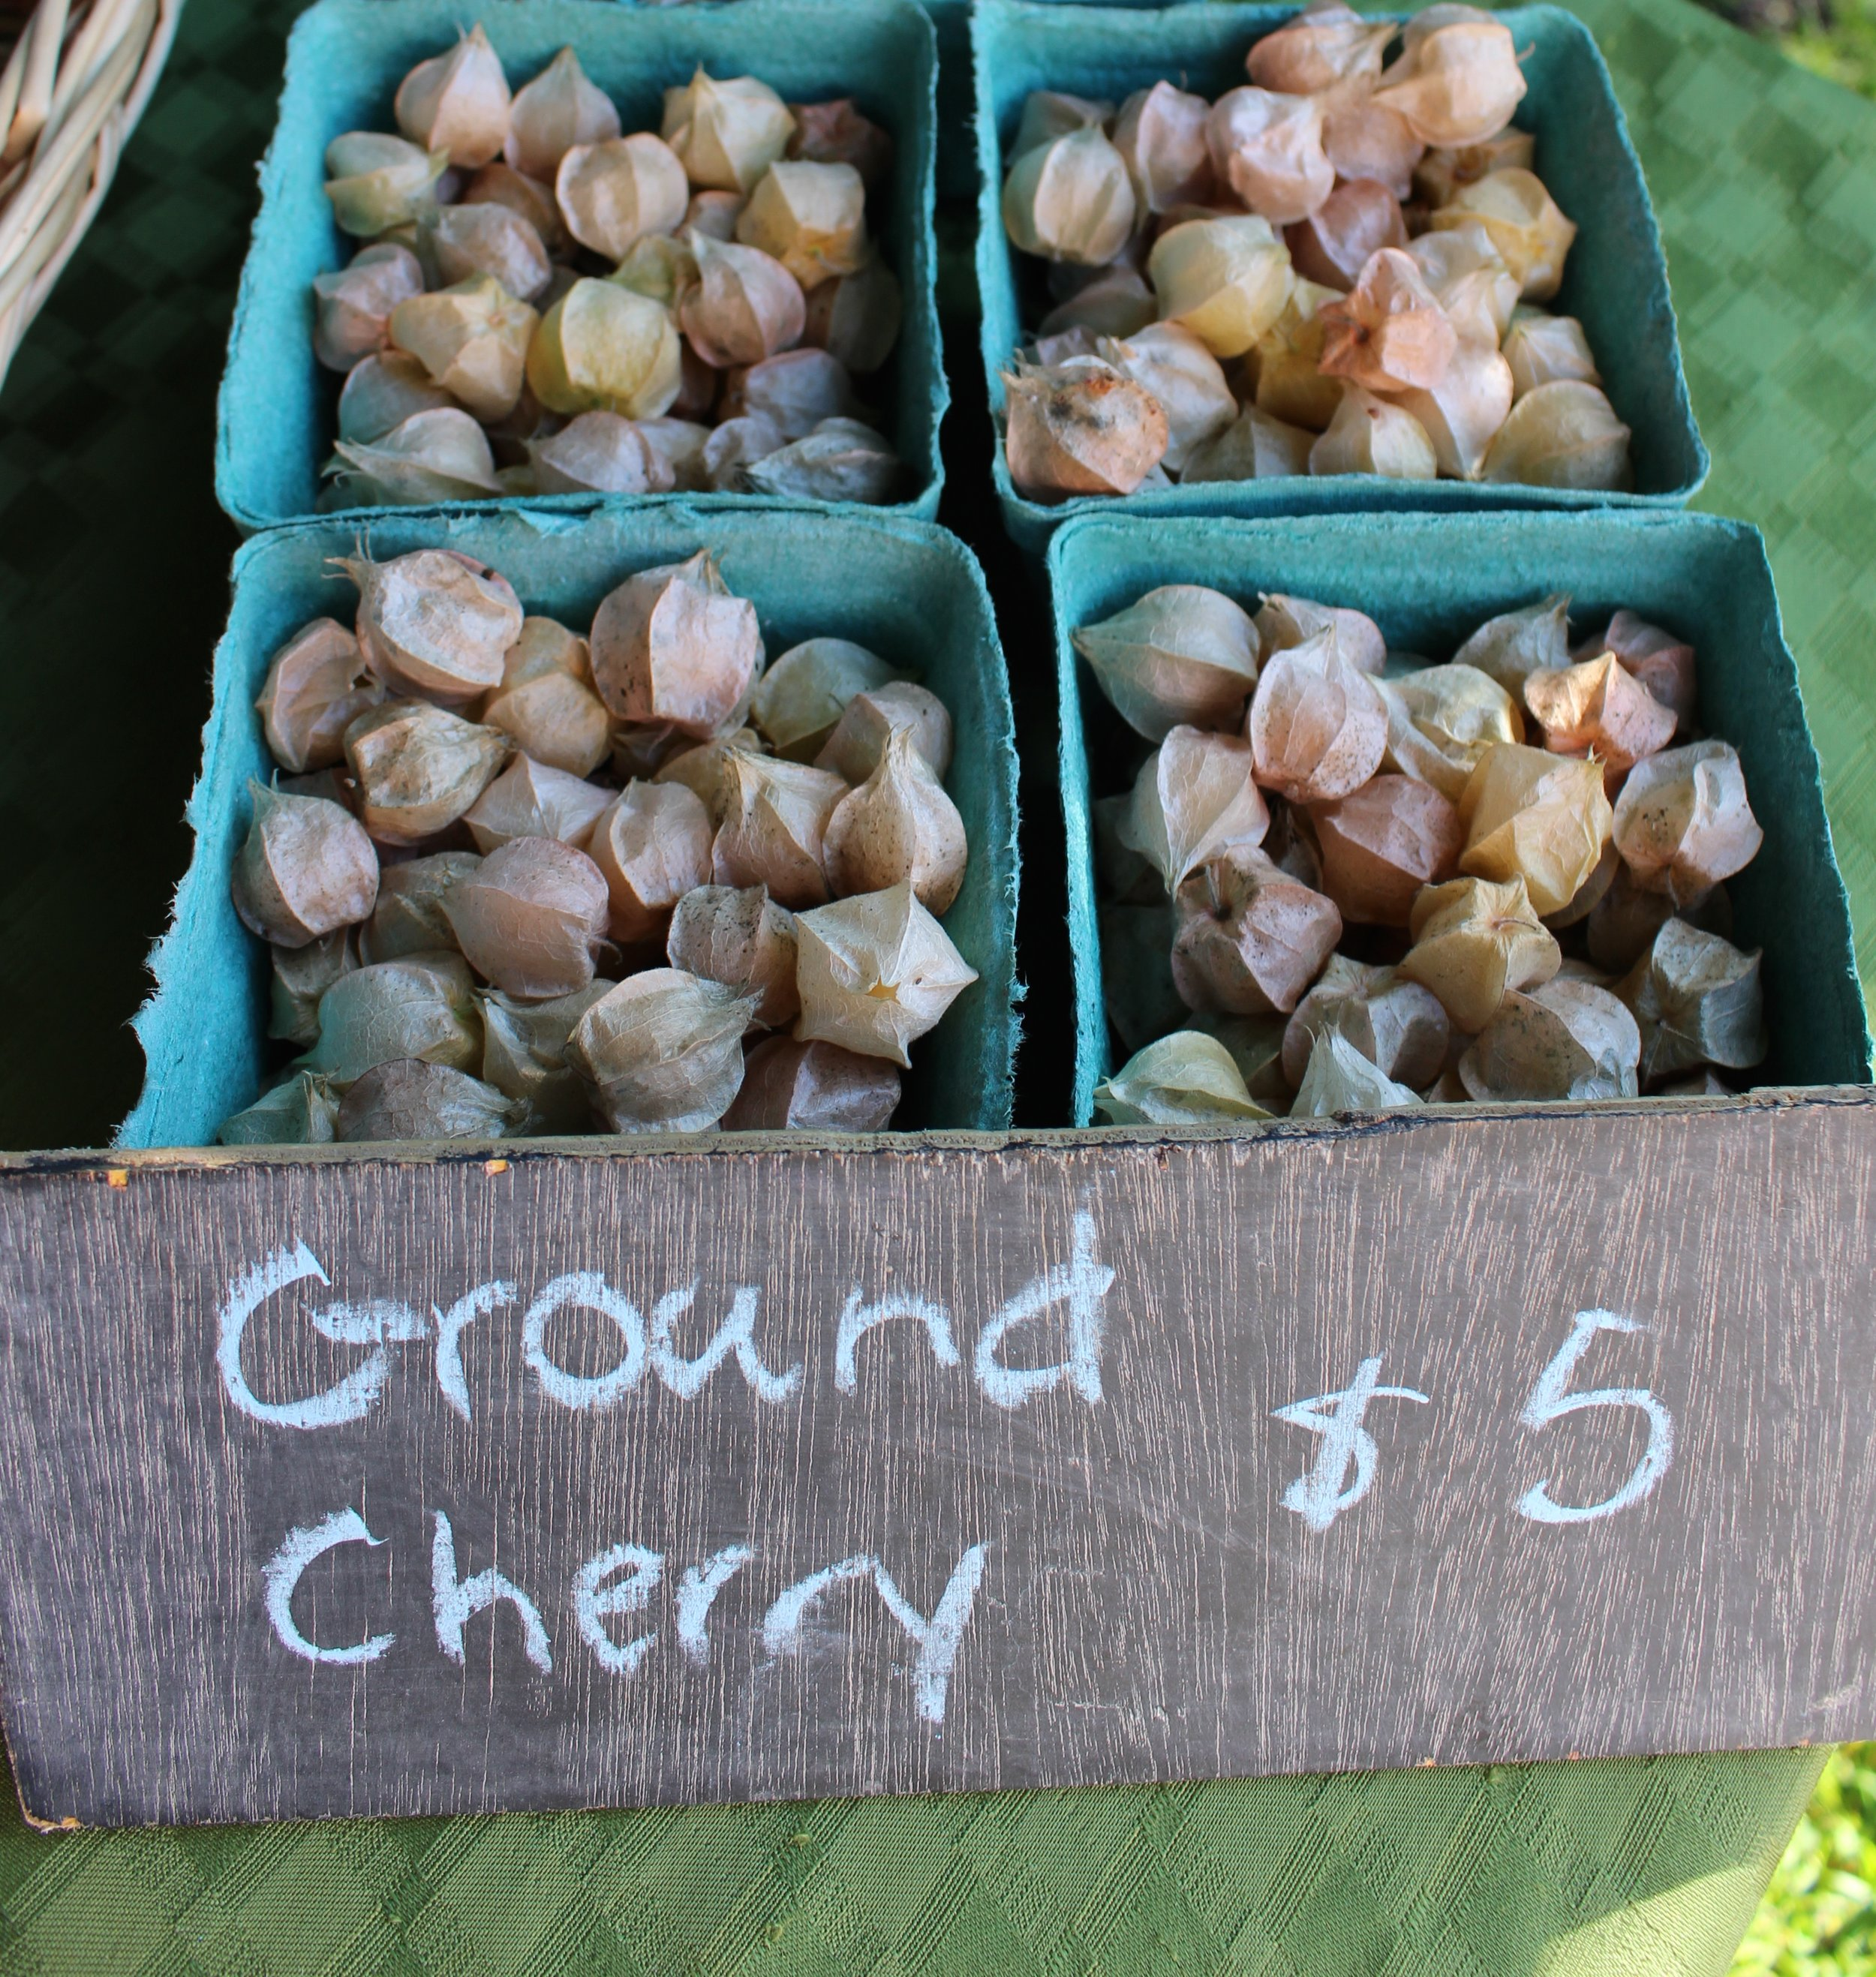 I had never seen ground cherries before!